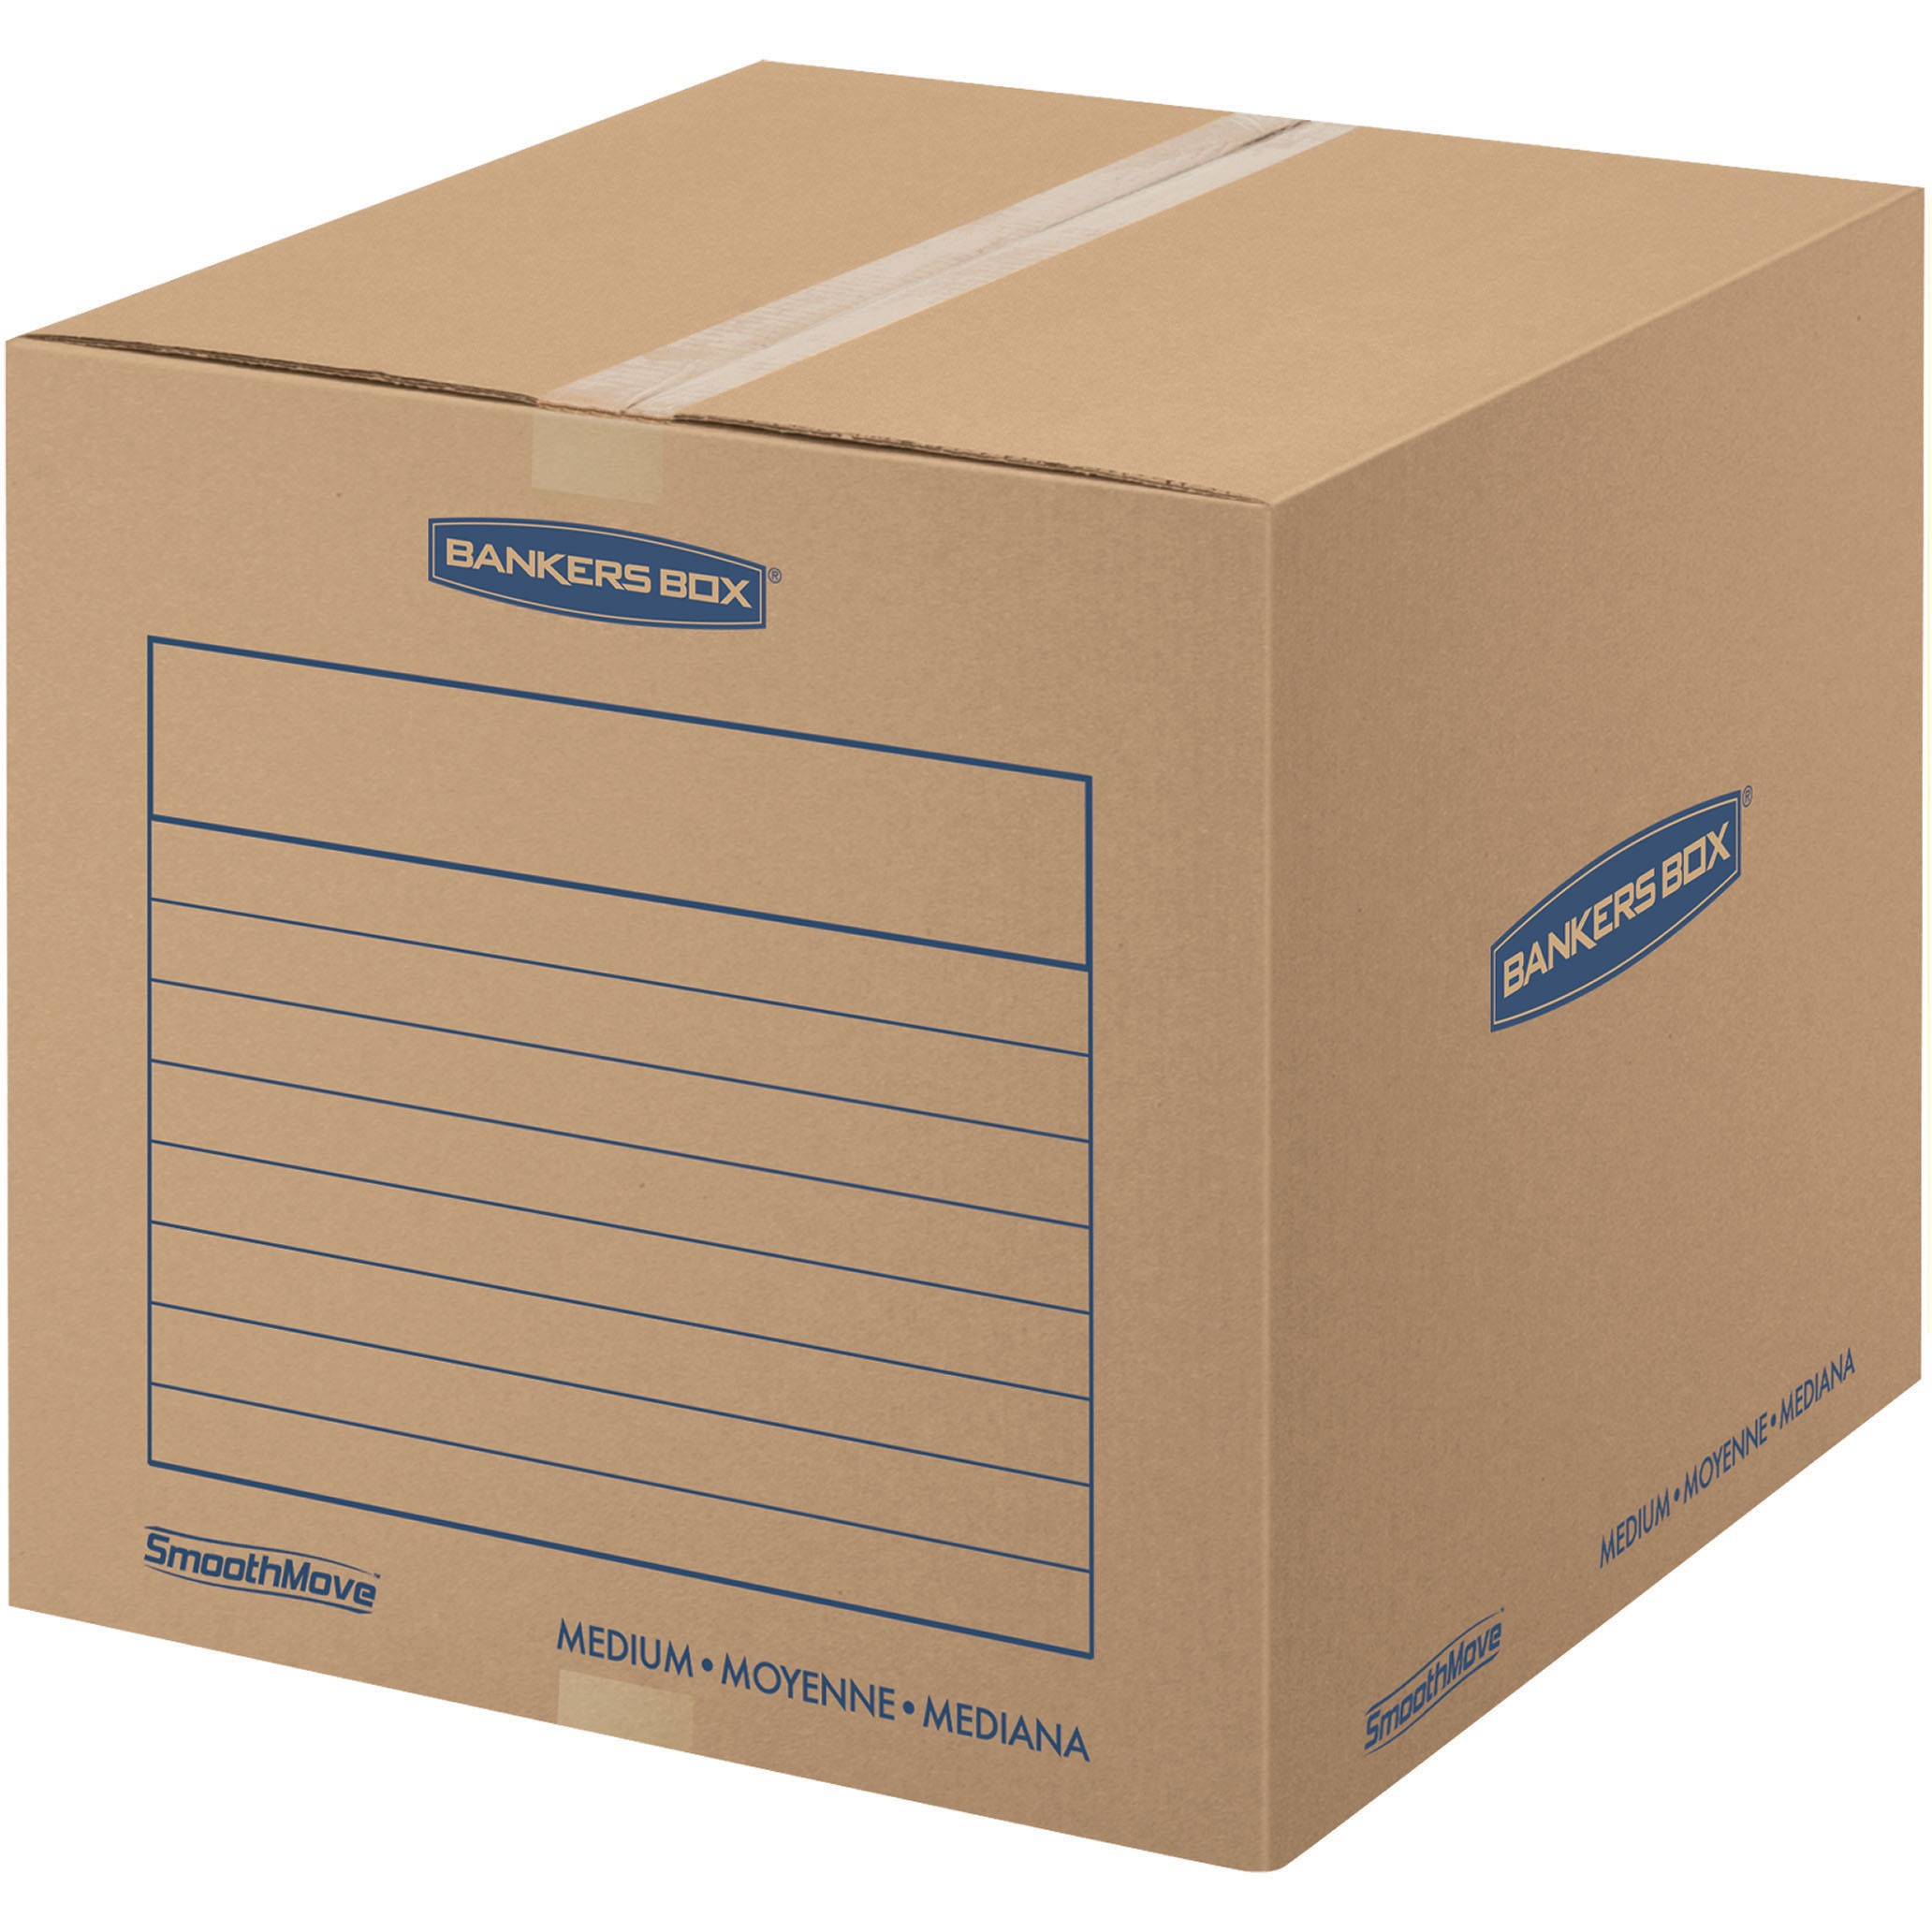 Bankers Box SmoothMove Basic Storage and Moving Boxes, Medium, 20pk